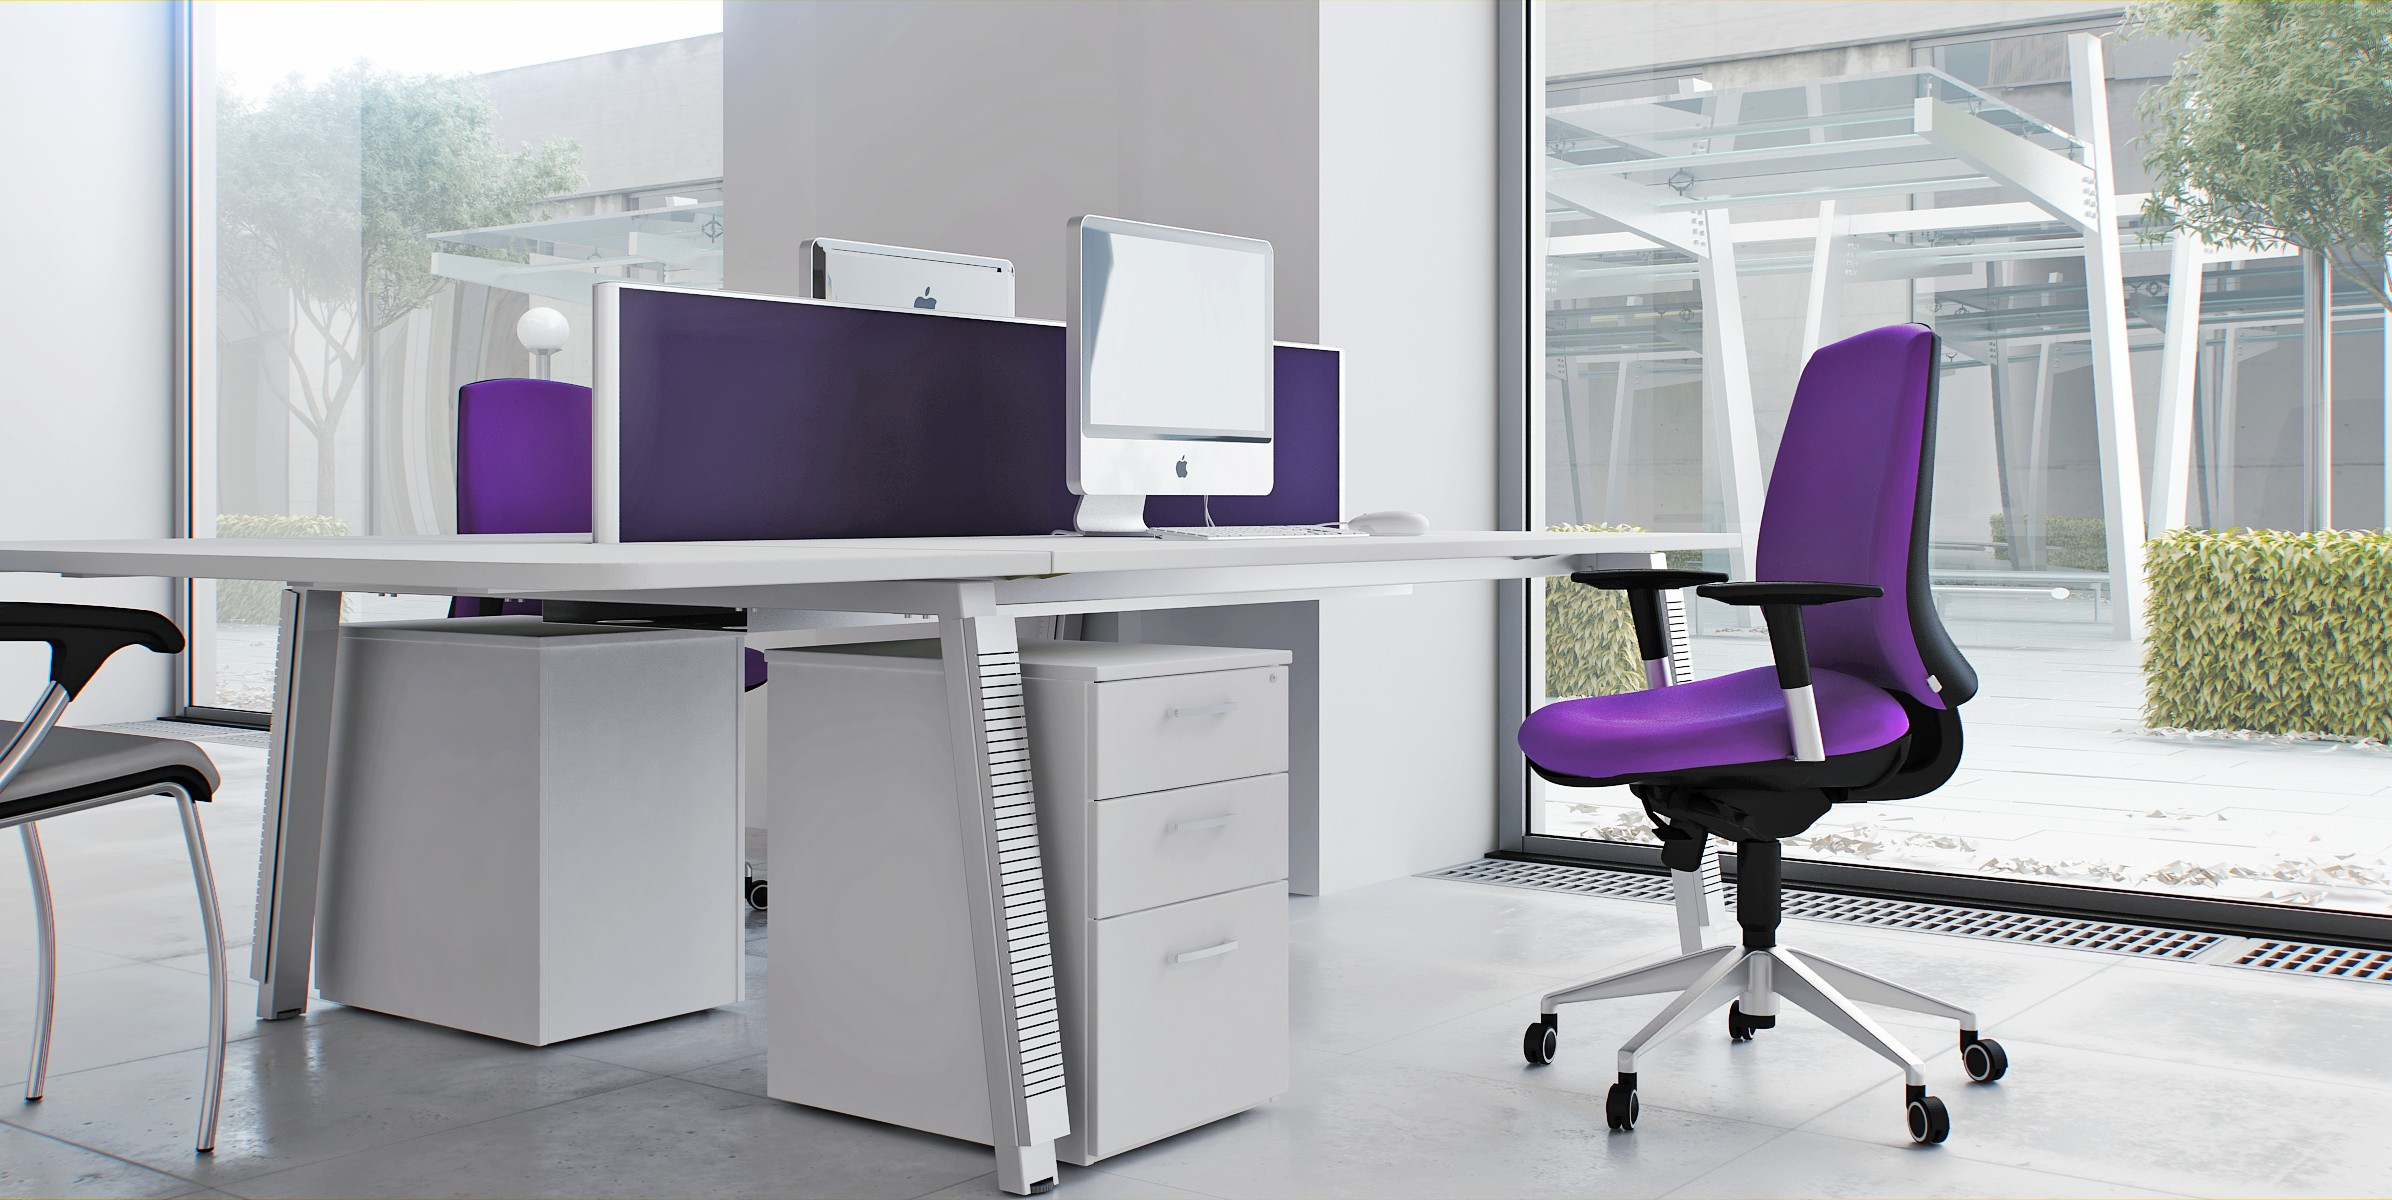 design-work-room-cool-with-modern-office-chair-purple-and-proprietary-work-table-with-white-and-pane-of-glass-with-large-size-and-barrier-table-with-color-purple